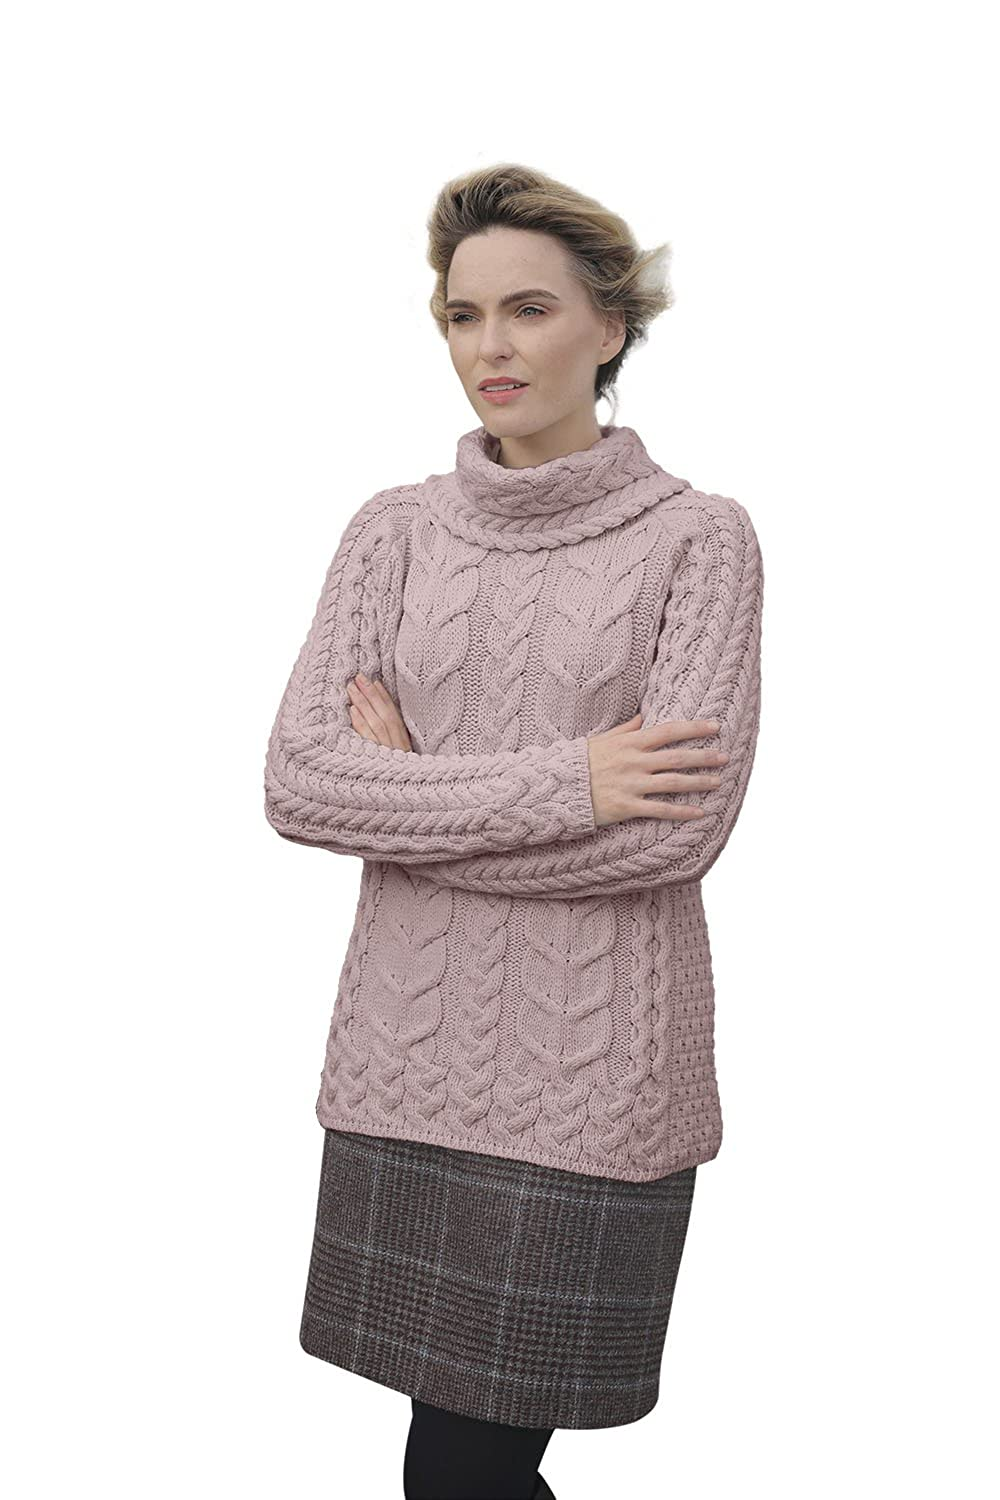 Supersoft Merino Cowl Neck Knit Aran Sweater